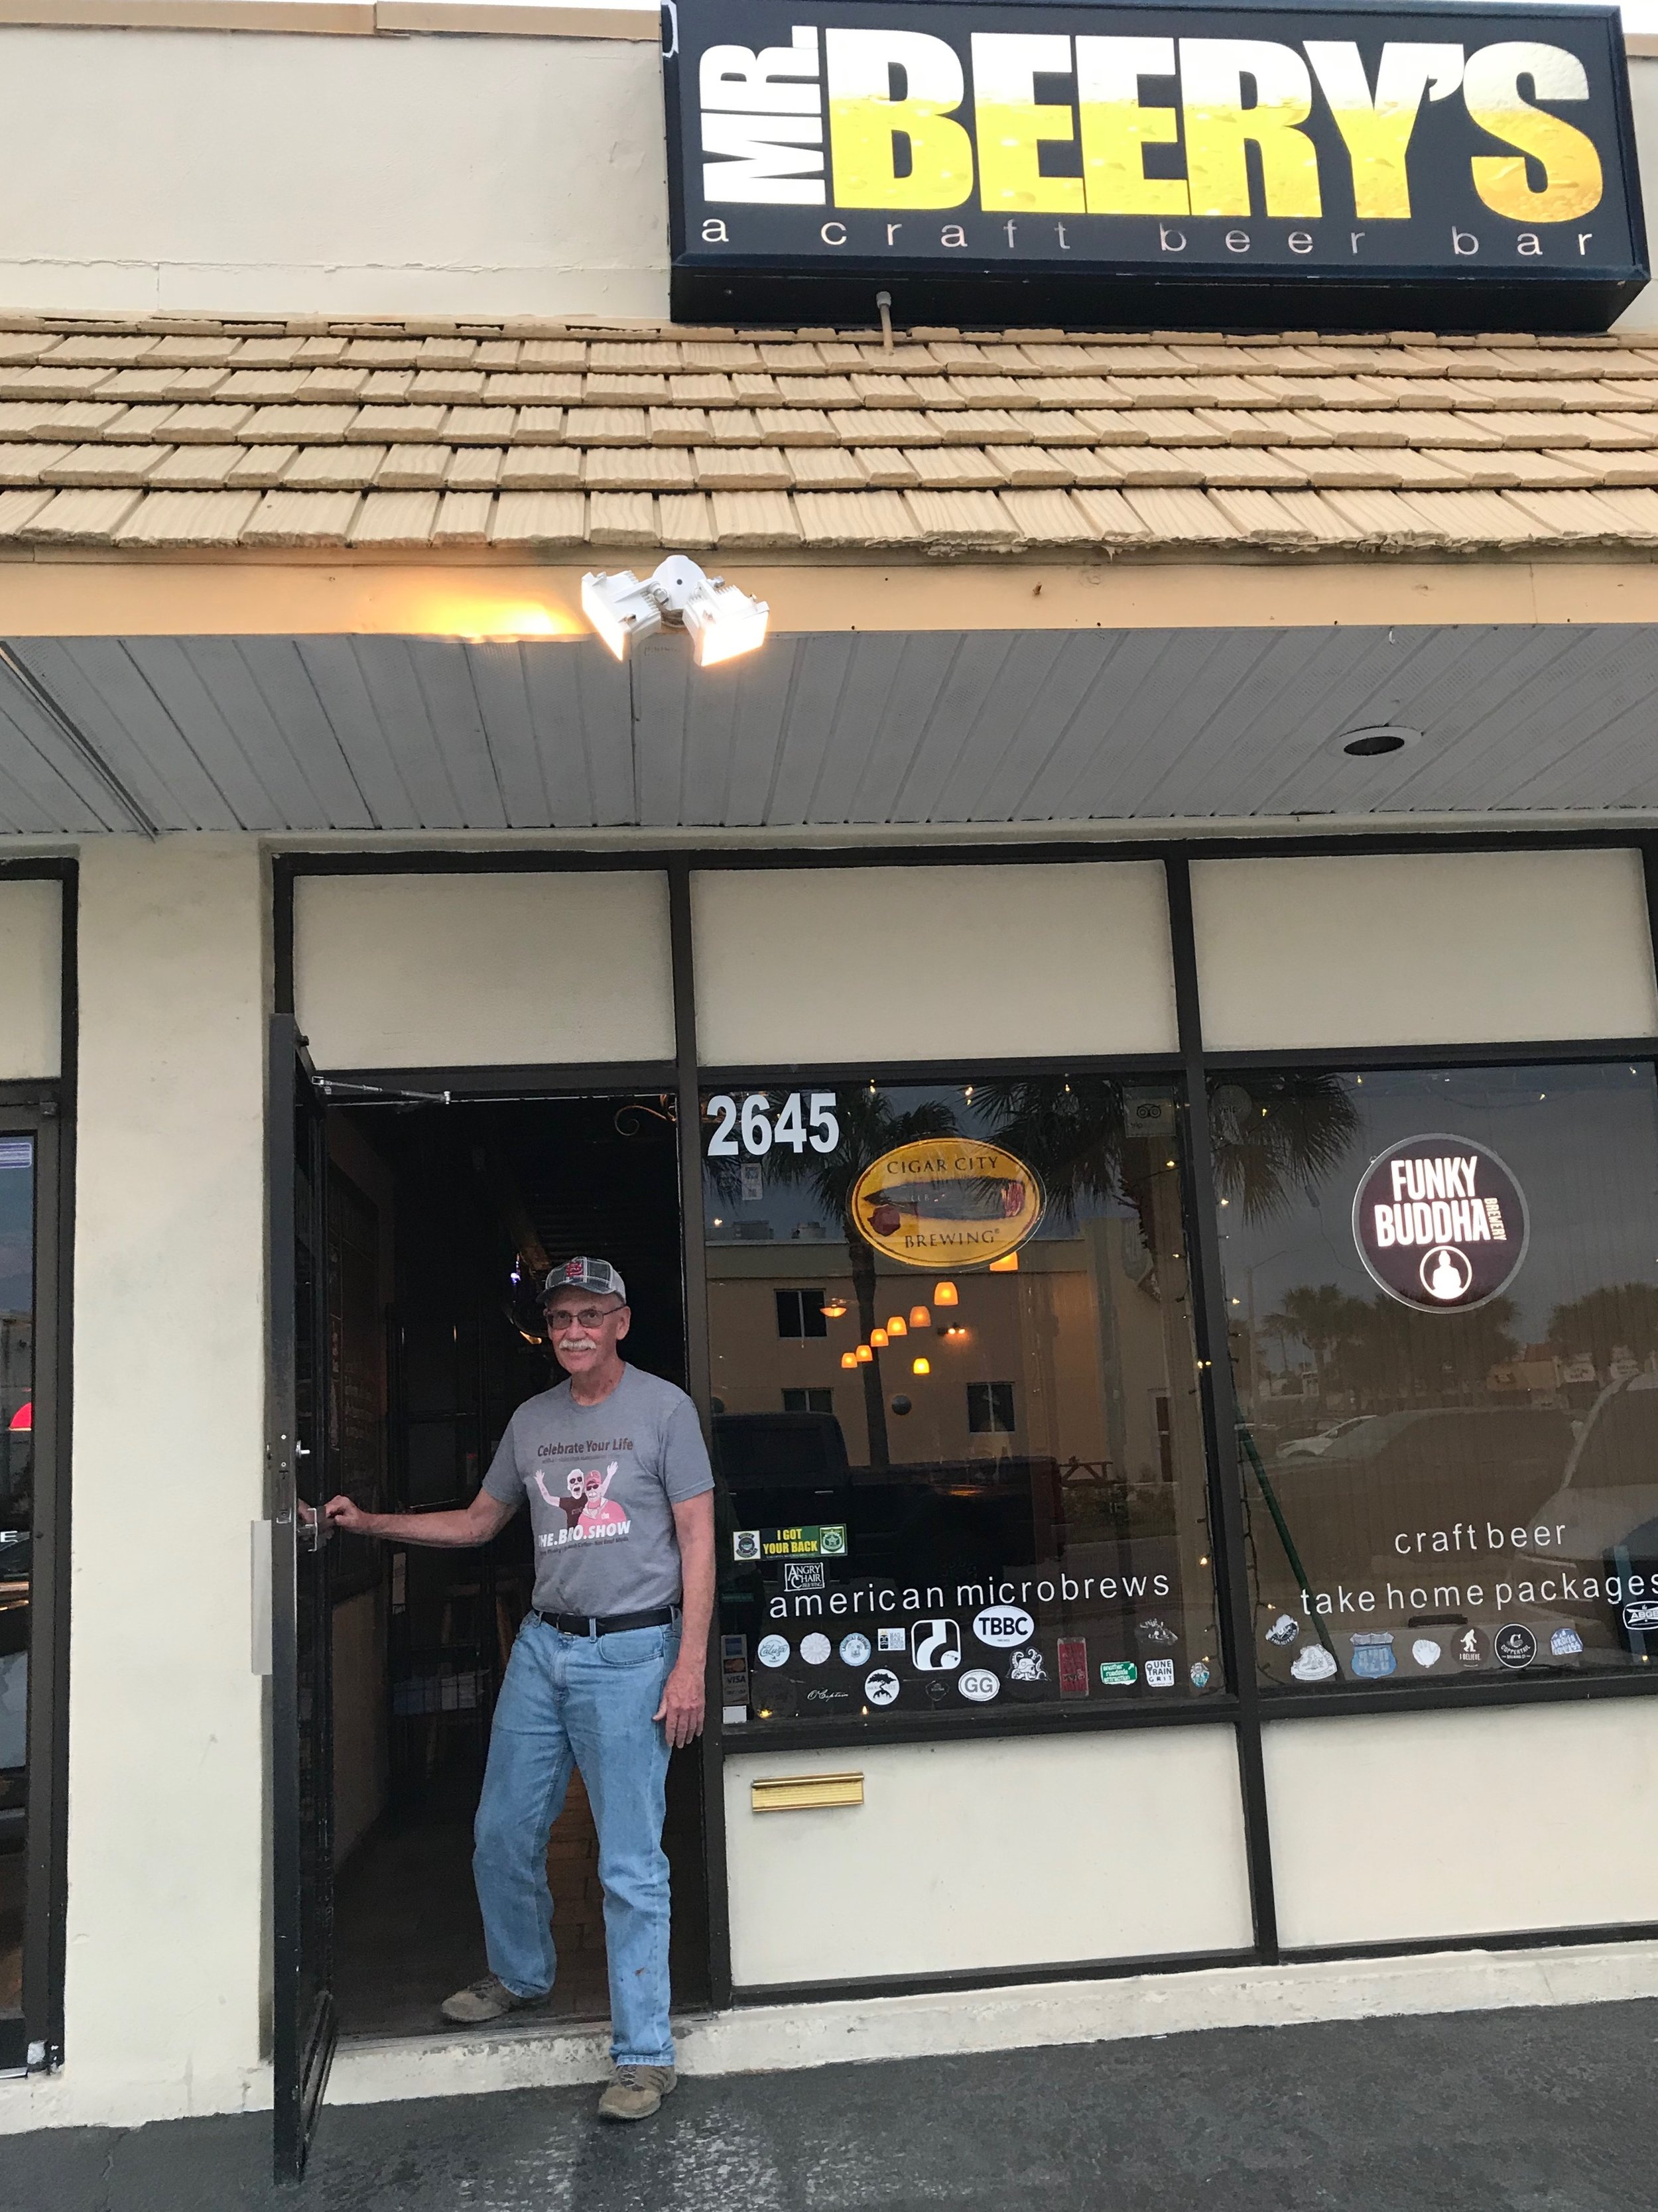 Jon's after-game pub: Mr. Beery's